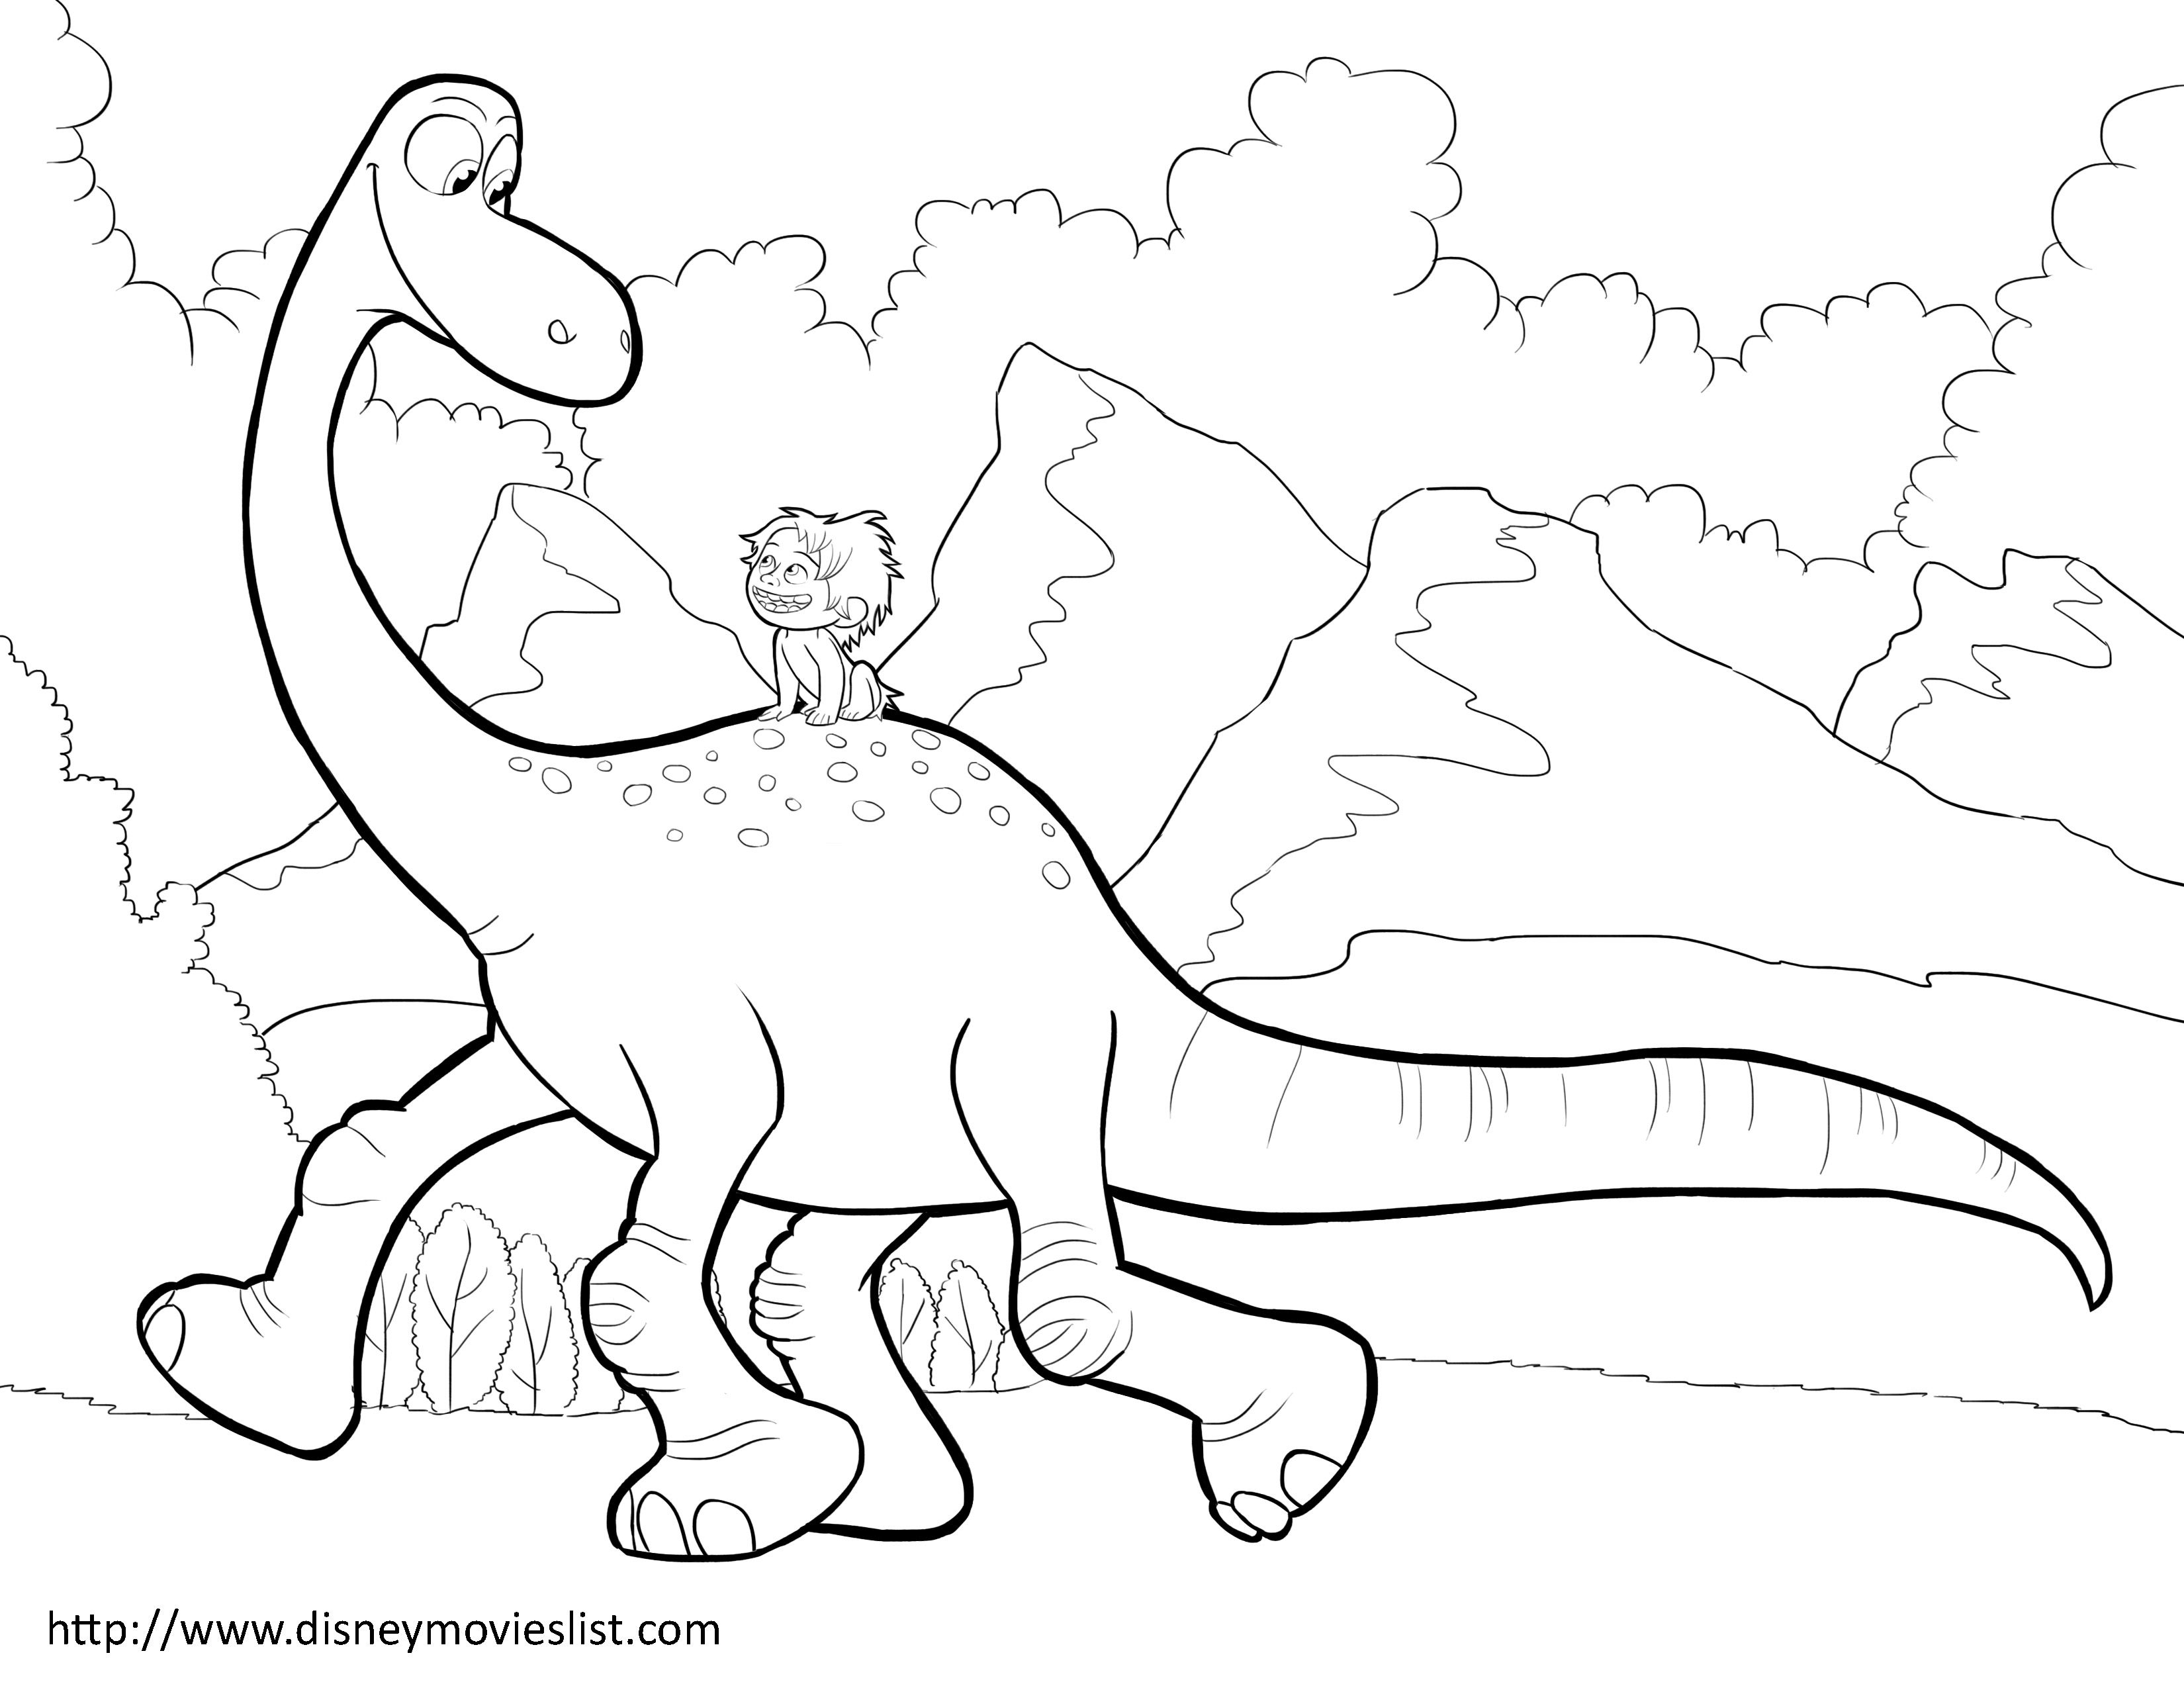 Disney\'s The Good Dinosaur Arlo and Spot Coloring Page | The Good ...